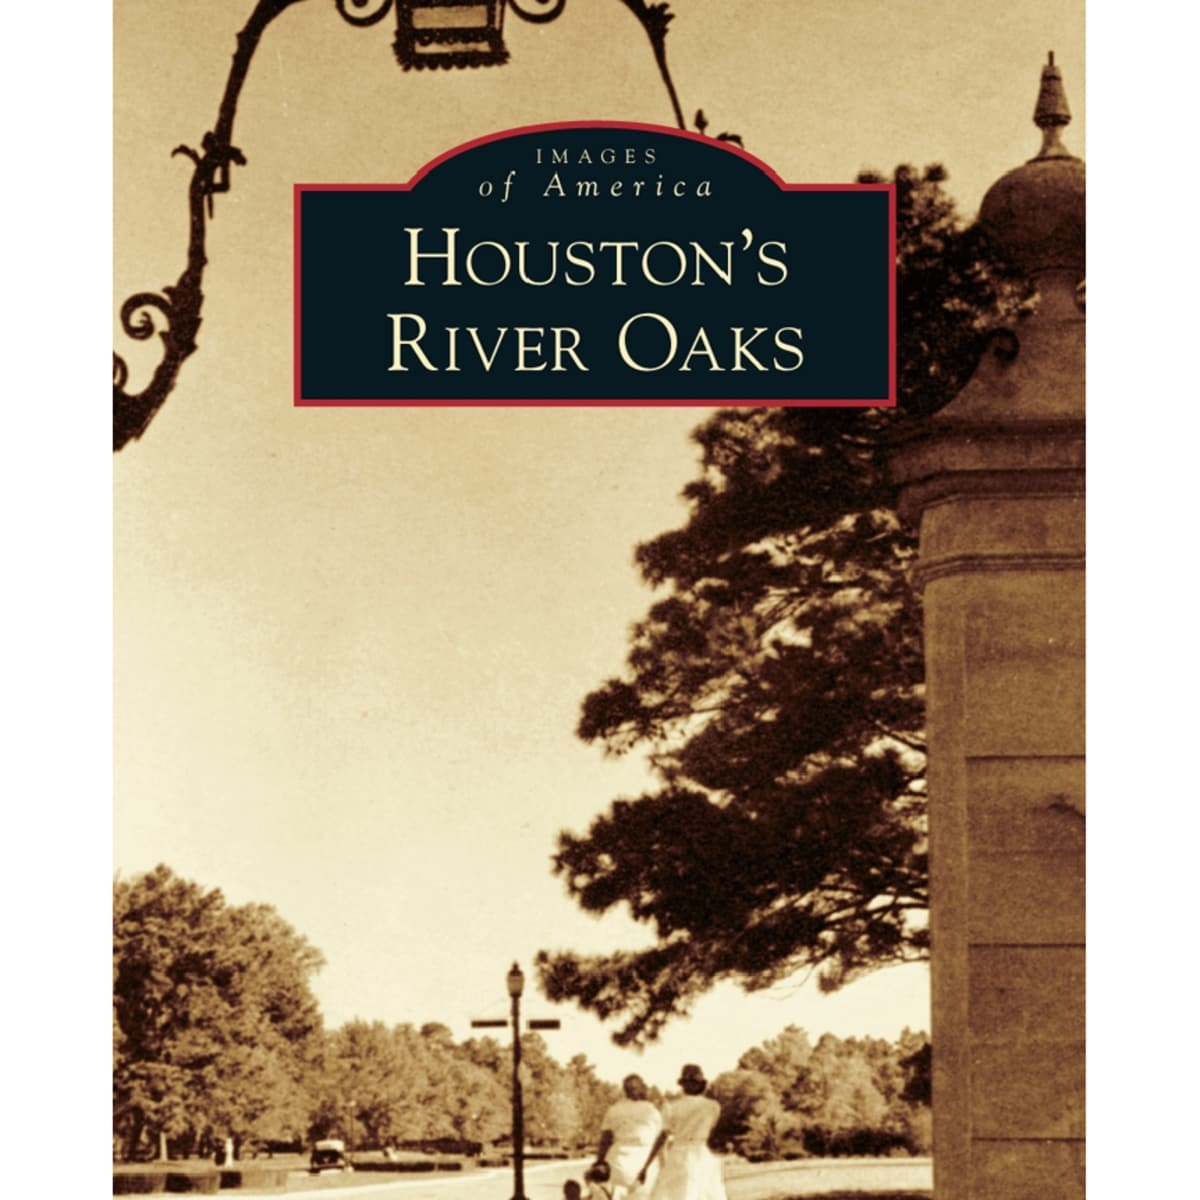 Jerry & Marvy Finger Lecture Series presents Houston's River Oaks By Ann Dunphy Becker